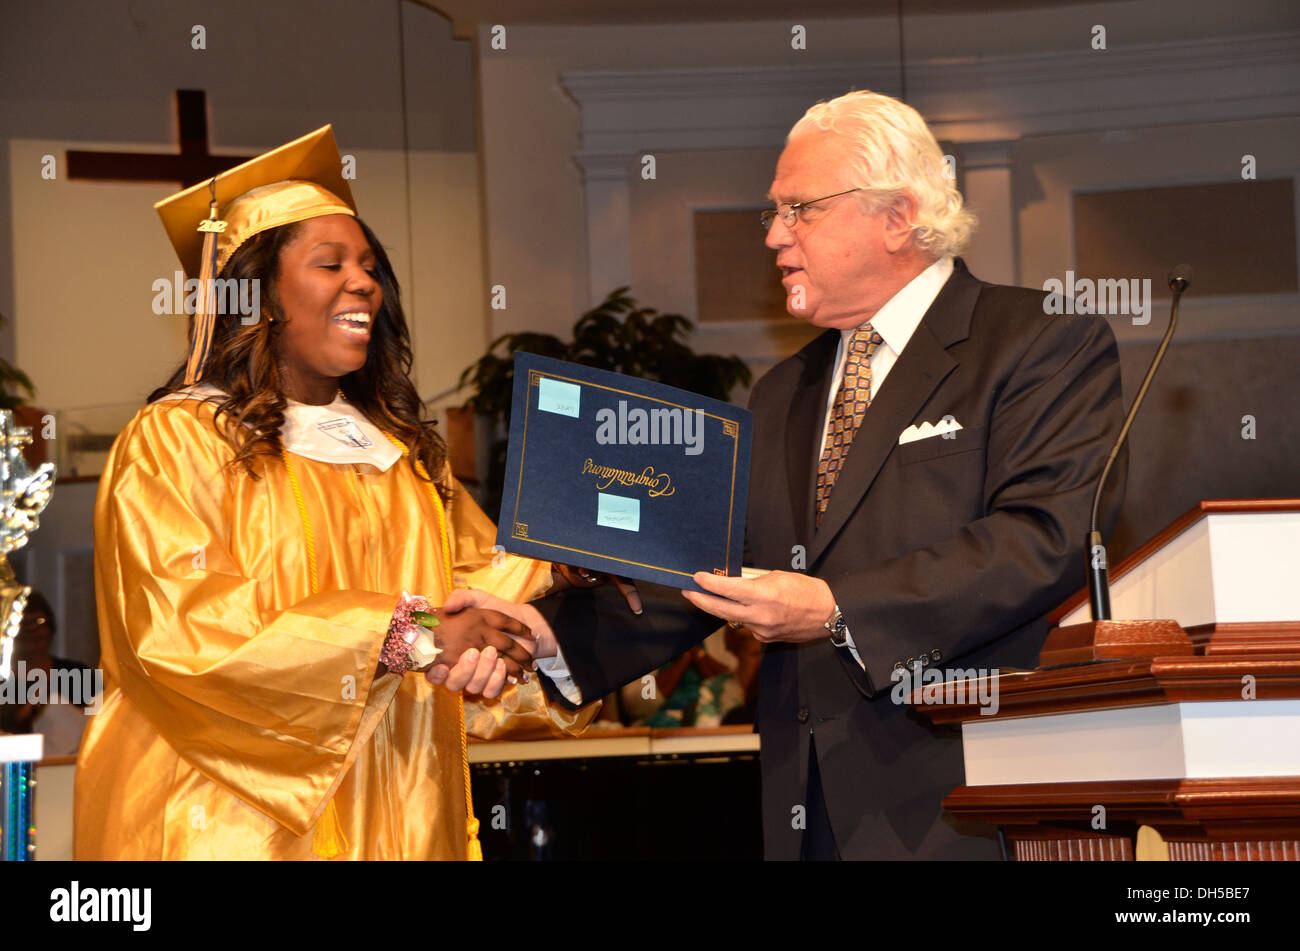 Maryland Senator Michael Miller present a diploma to a graduating student at a high school graduation, Stock Photo